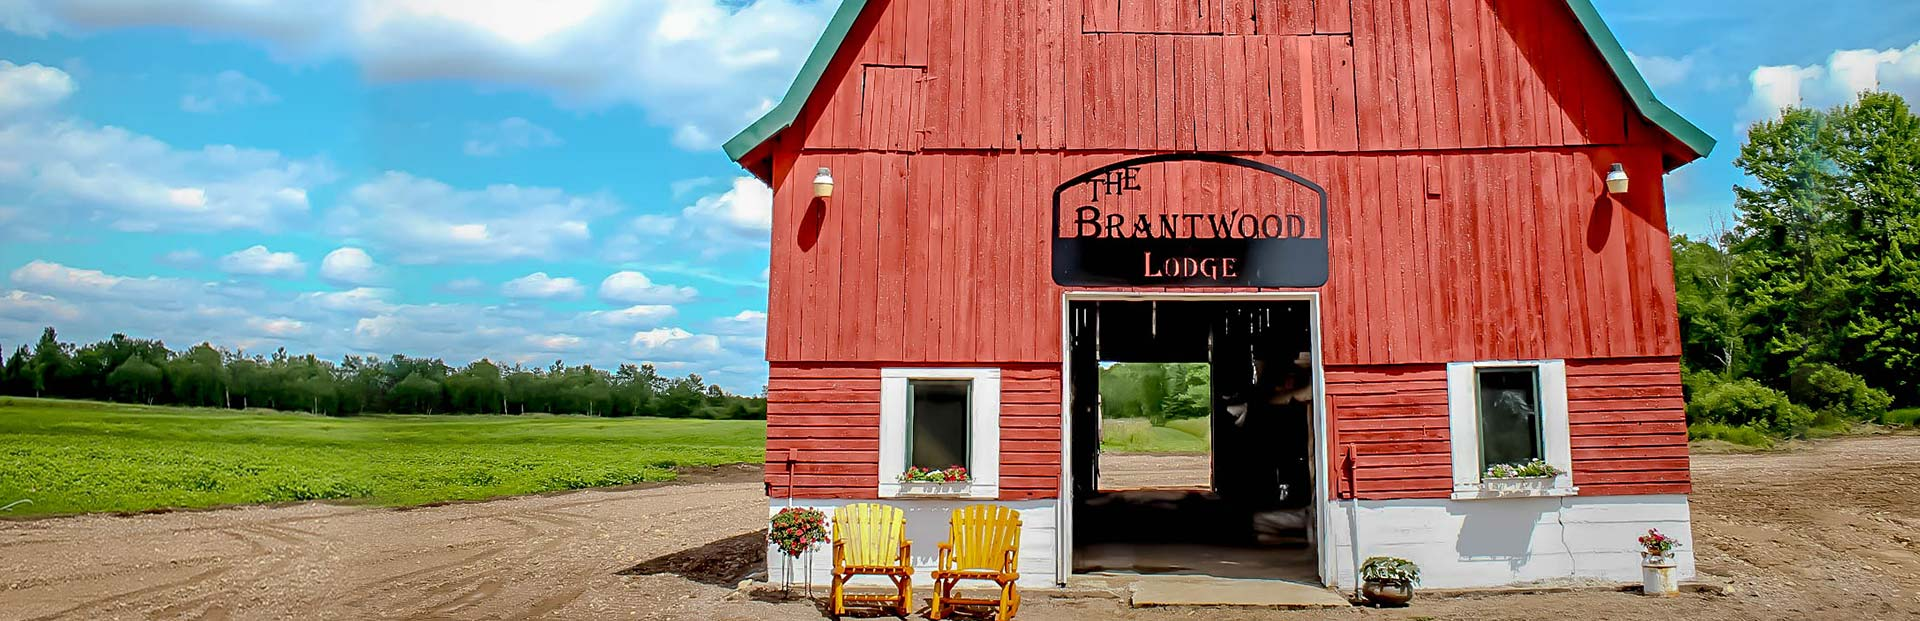 Contact The Brantwood Lodge